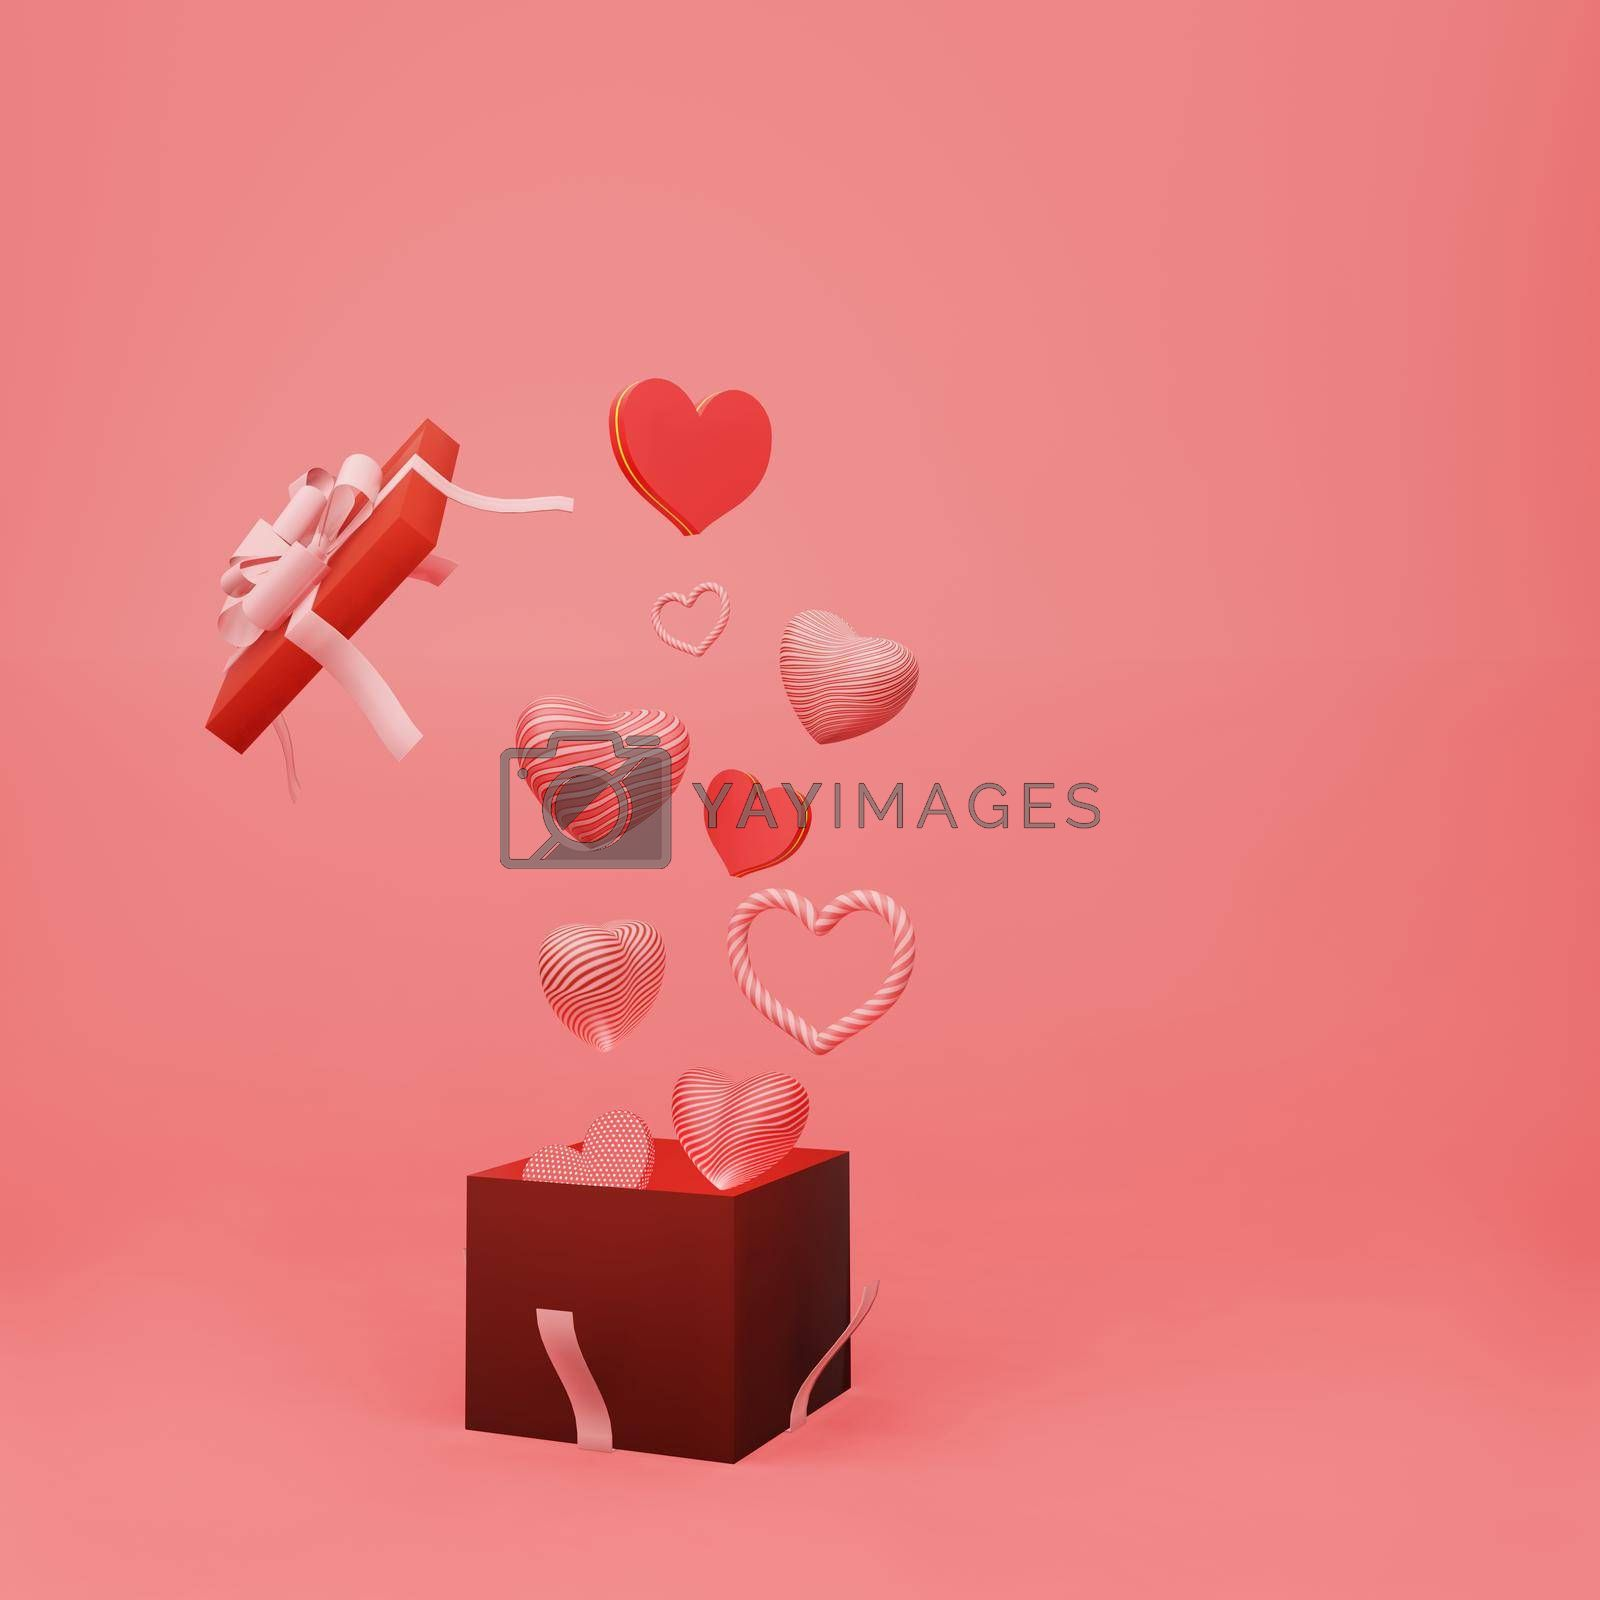 Royalty free image of Beautiful heart sharp float from open gift box by eaglesky